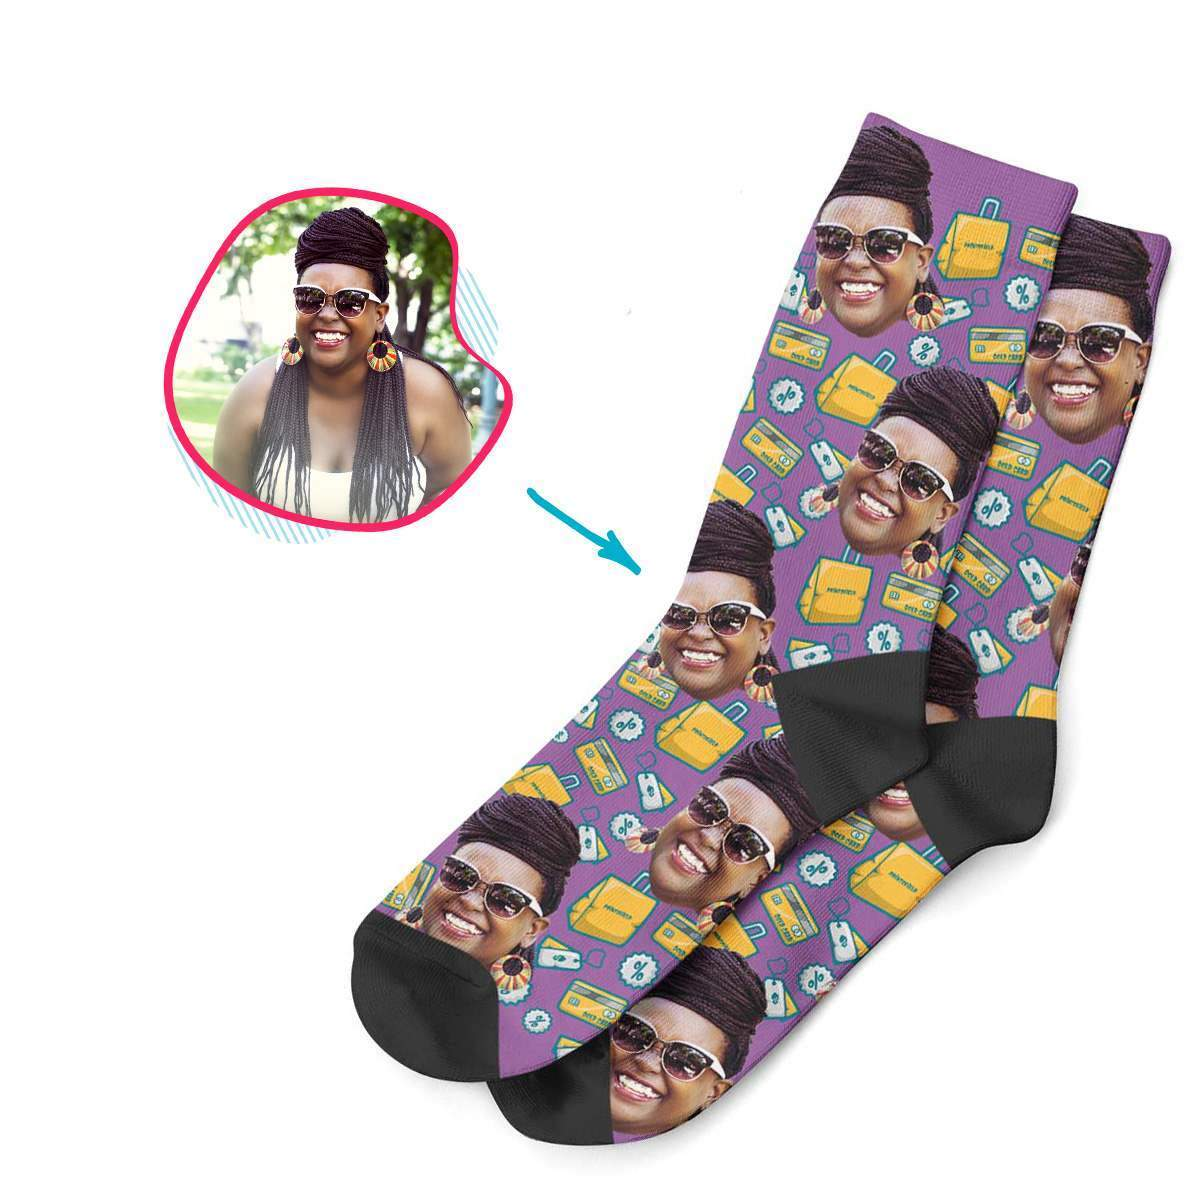 purple Shopping socks personalized with photo of face printed on them